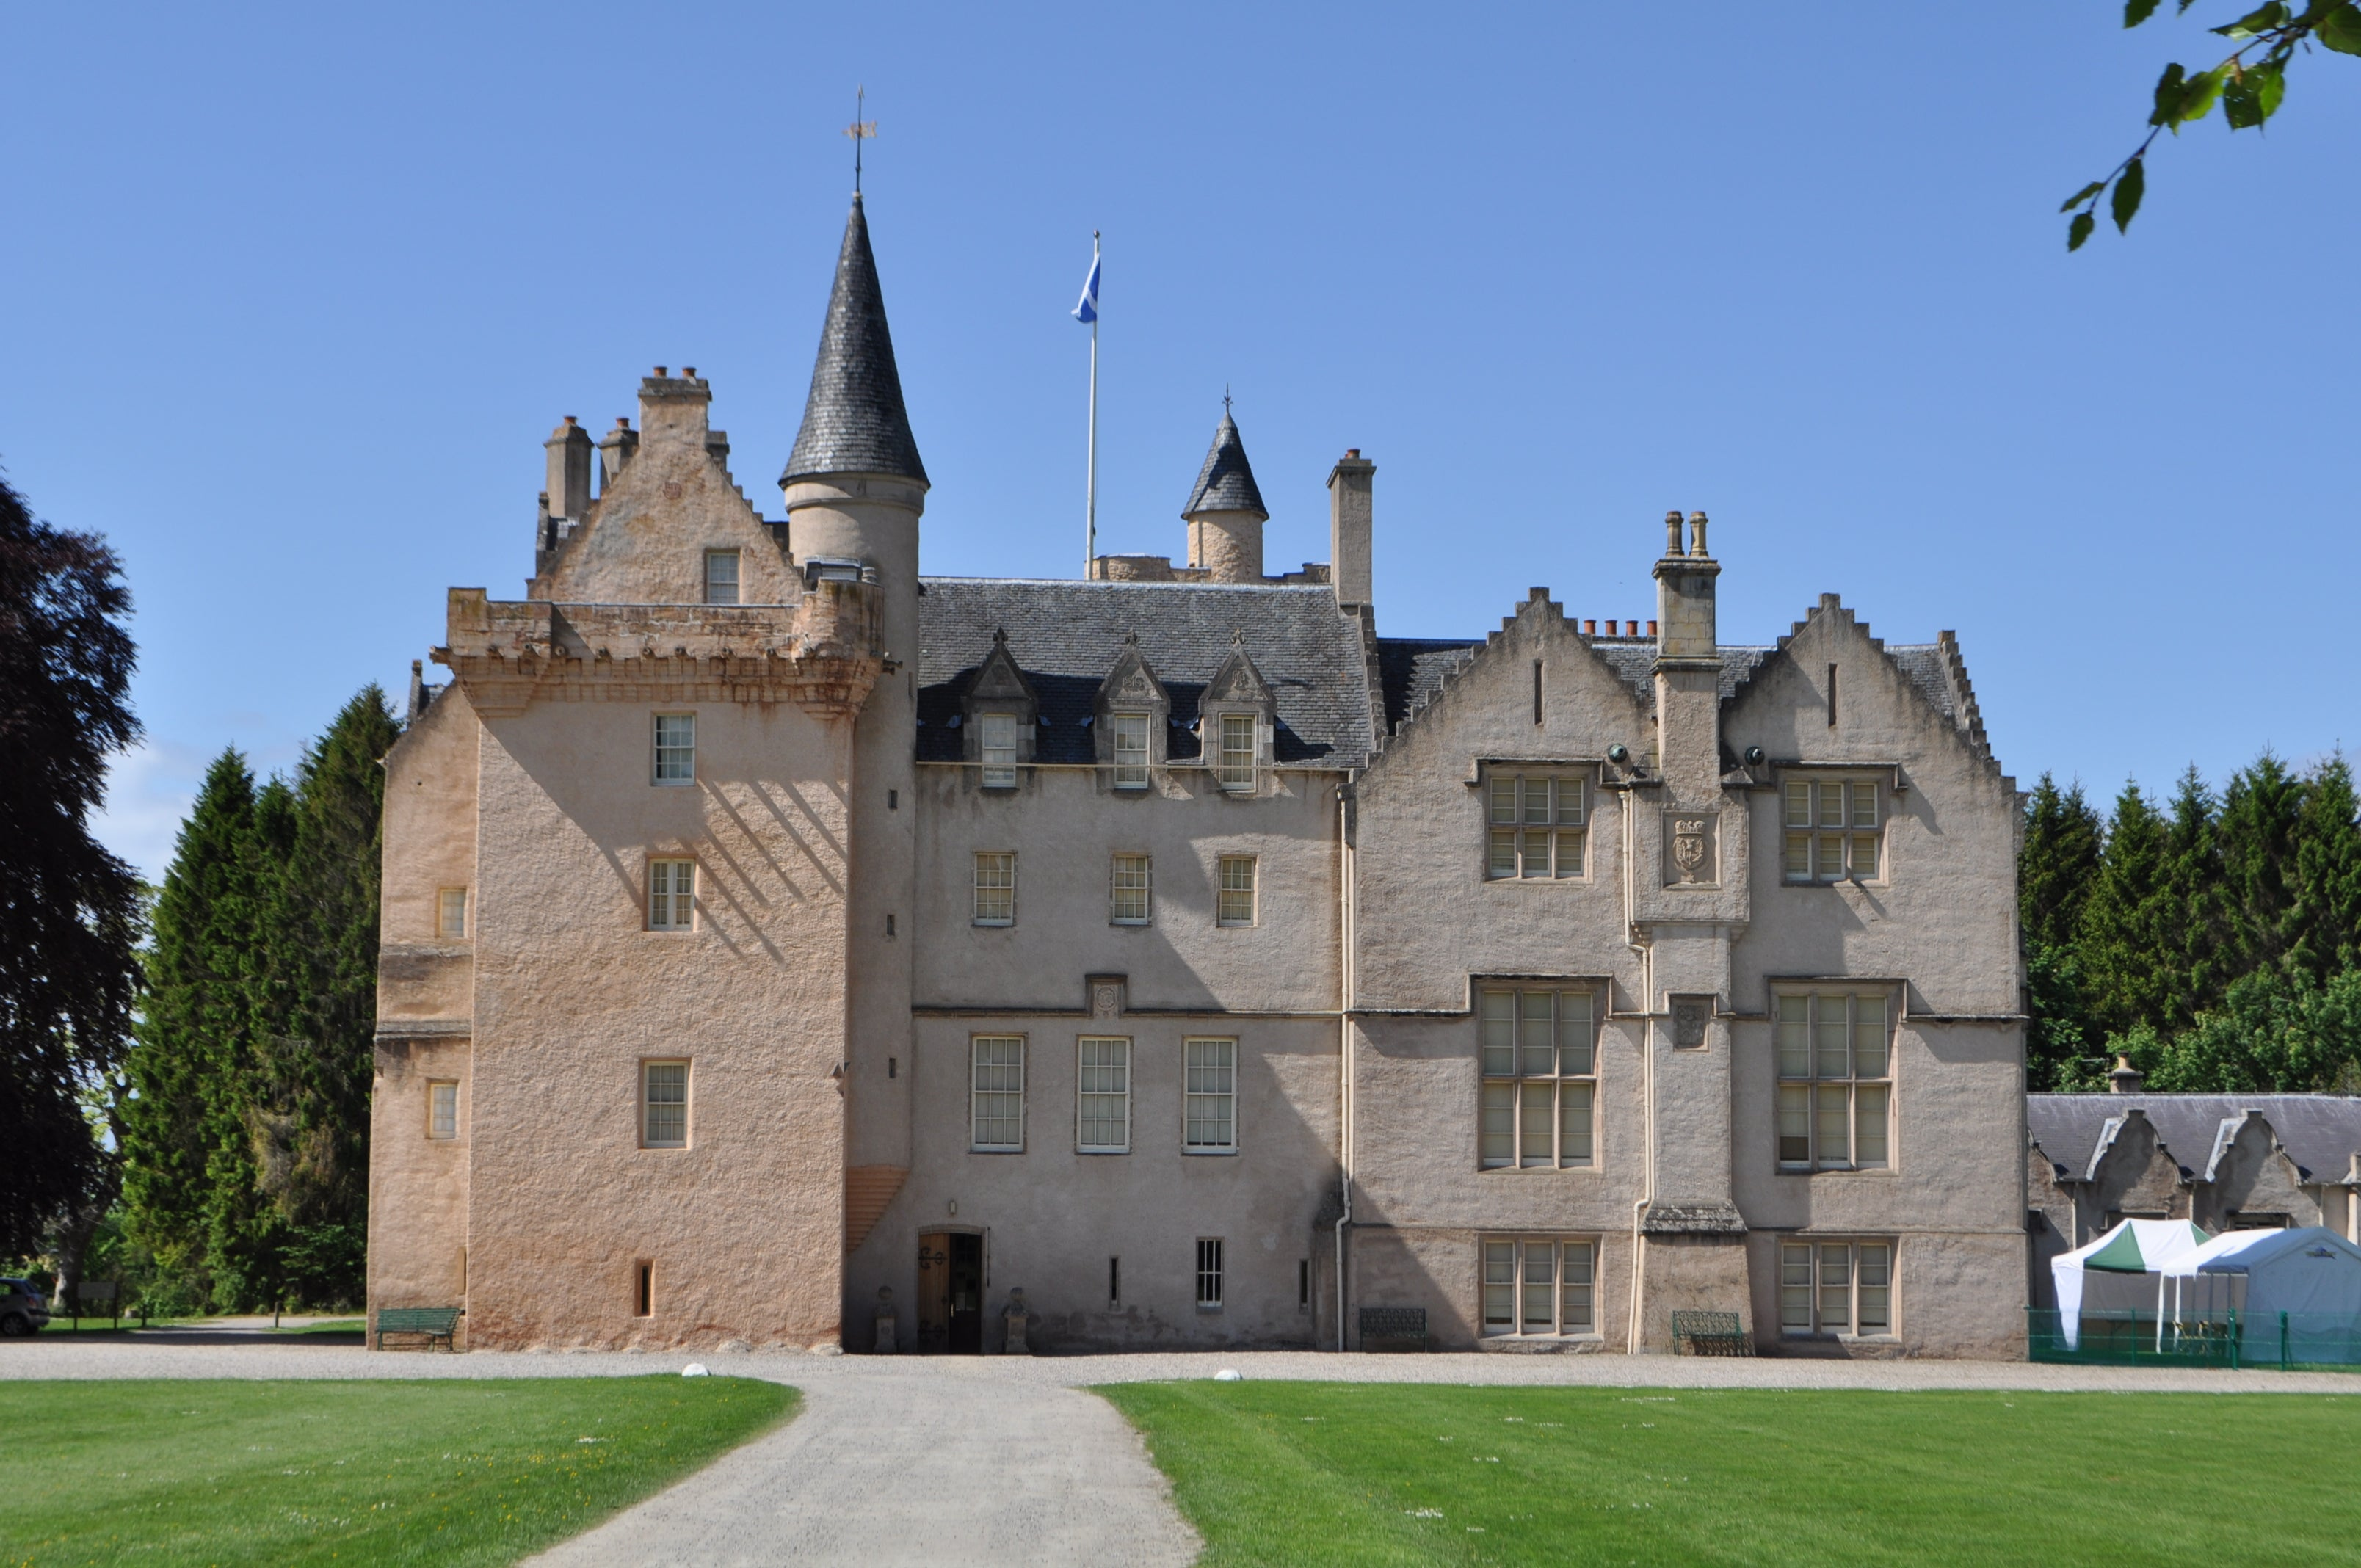 Château in Forres